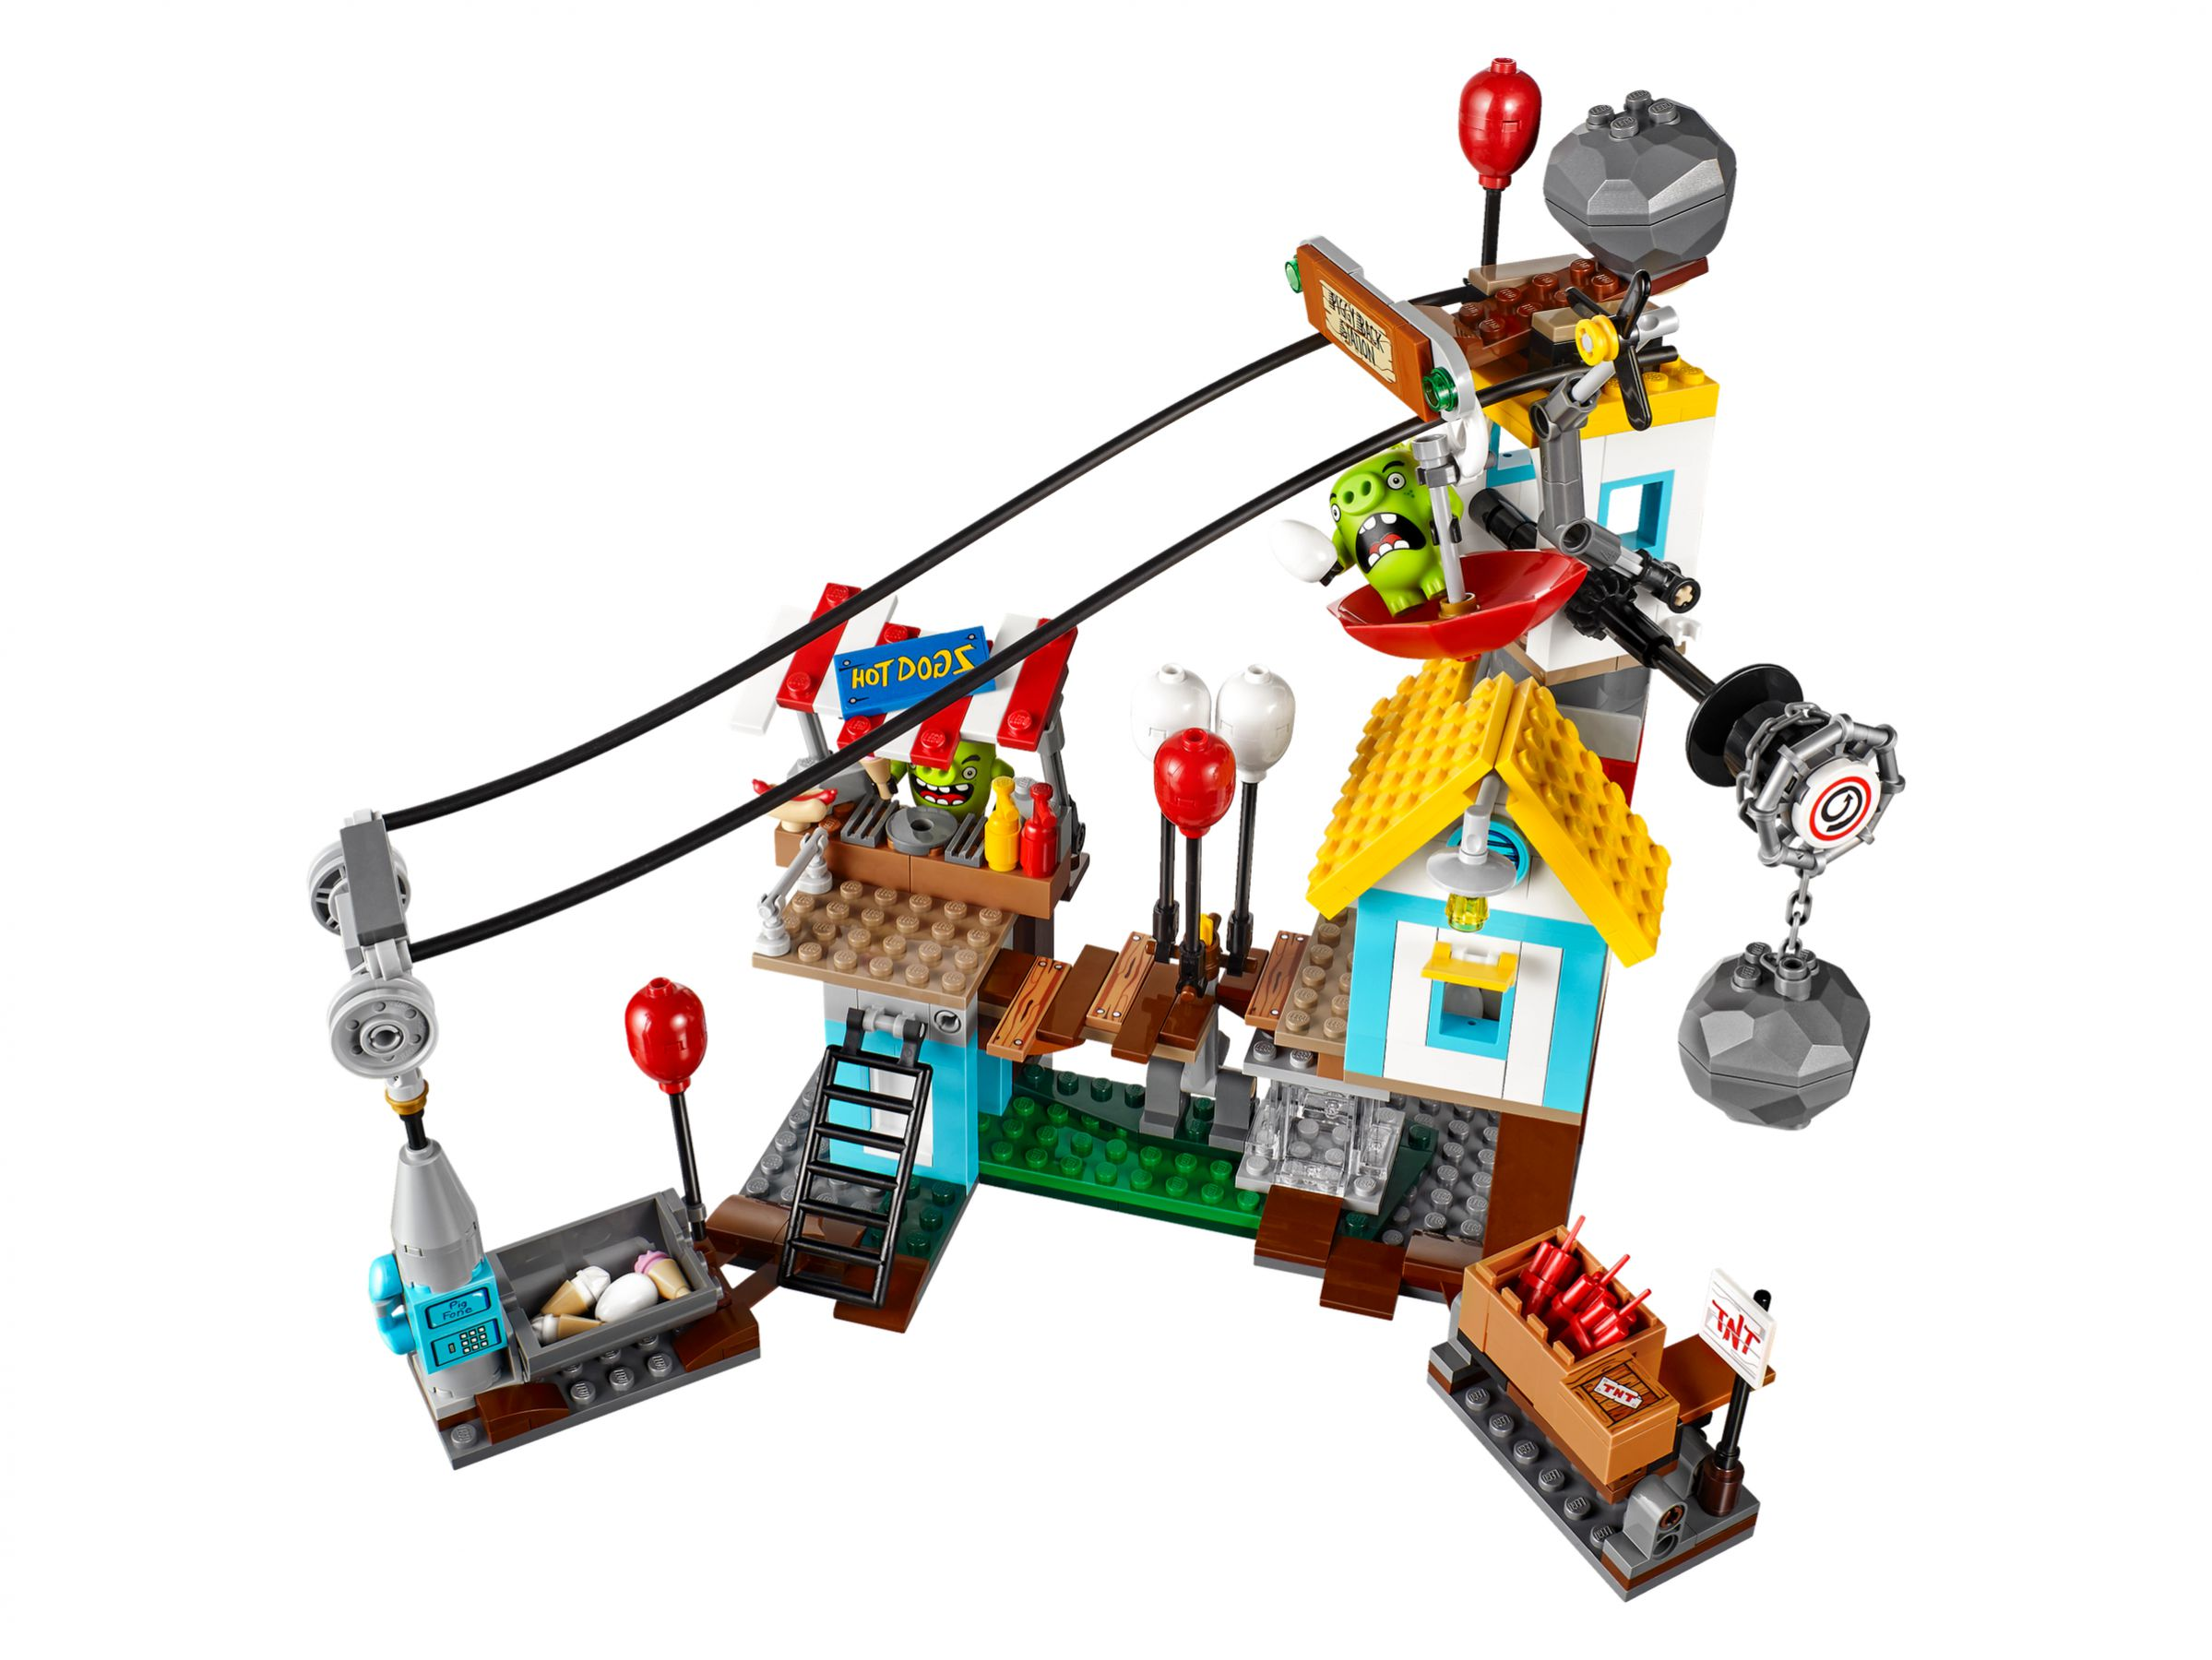 LEGO Angry Birds 75824 Pig City Teardown LEGO_75824_alt2.jpg